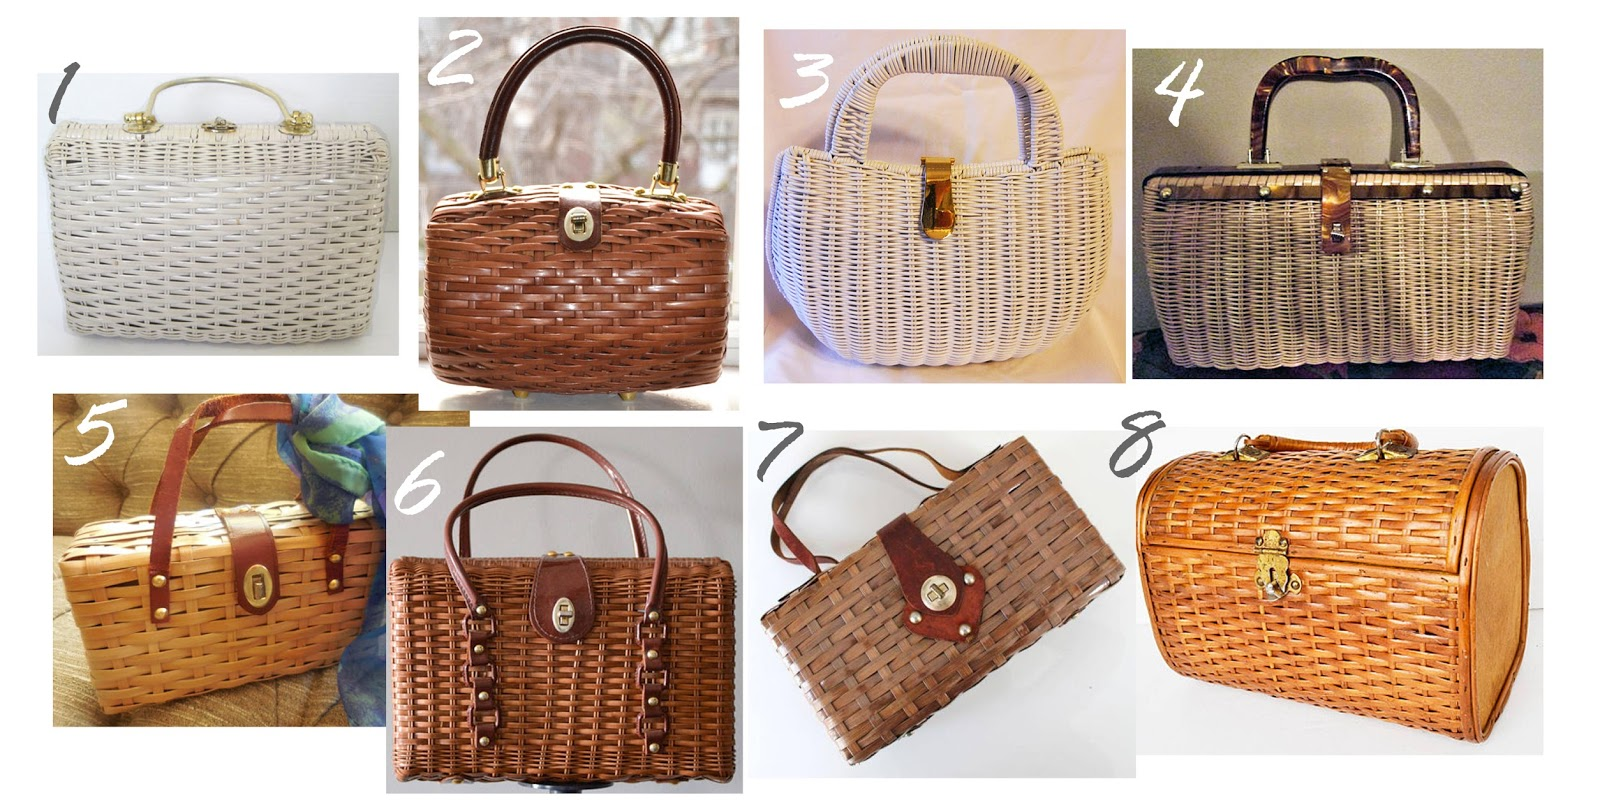 Vintage wicker handbags, vintage handbags, vintage wicker baskets, vintage purses, and etsy vintage handbags